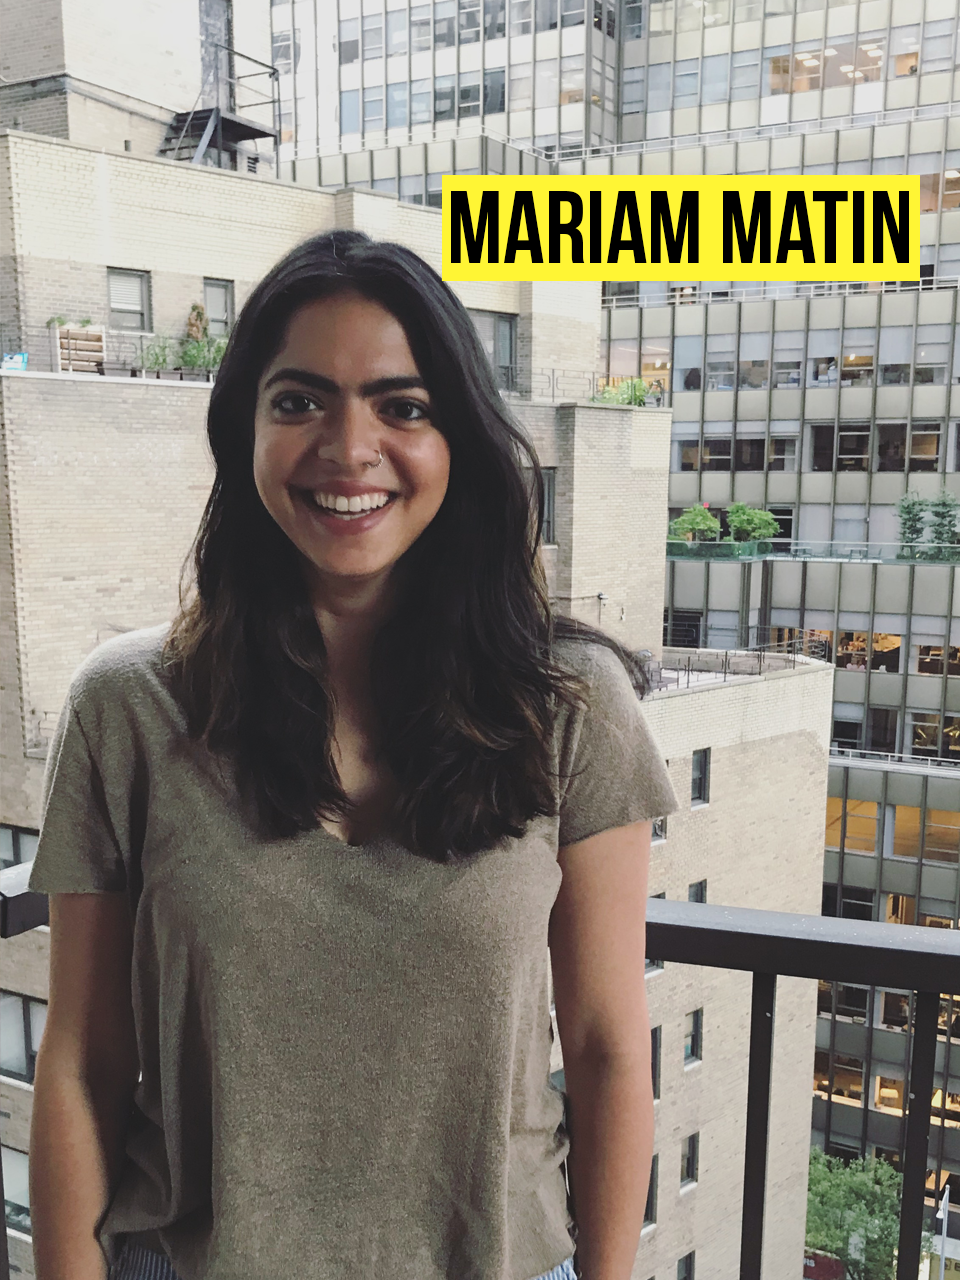 "co-founder - Mariam grew up in Houston, surrounded by family and world-class tacos. She became involved in interfaith issues and girls education in India. She was drawn to Georgetown University for espousing similar Jesuit values and spent her four years studying (""studying"") Econ and Psych. After graduation, she moved to New York to do brand marketing and UX design. Her love for social impact and entrepreneurship (and her lovely co-founders) brought her to Second Day. She handles the branding, marketing, product design/build, and oversees a team of copywriters."